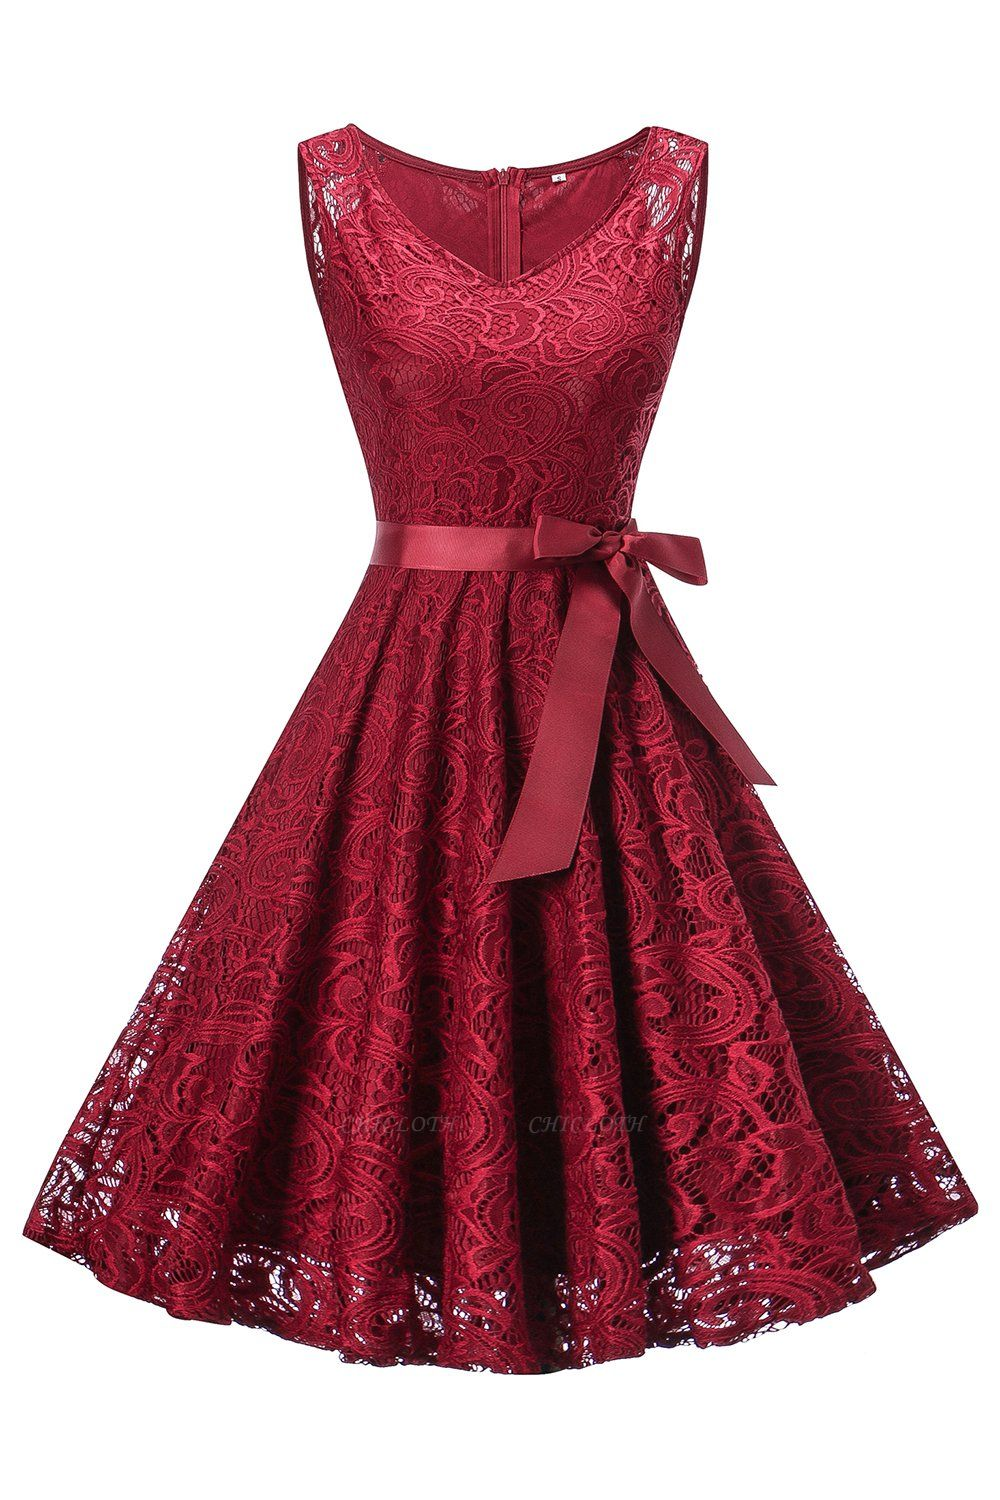 A| Chicoth Vintage Floral Lace Pleated Dress Women Sleeveless V-Neck Elegant Party Sexy Dresses